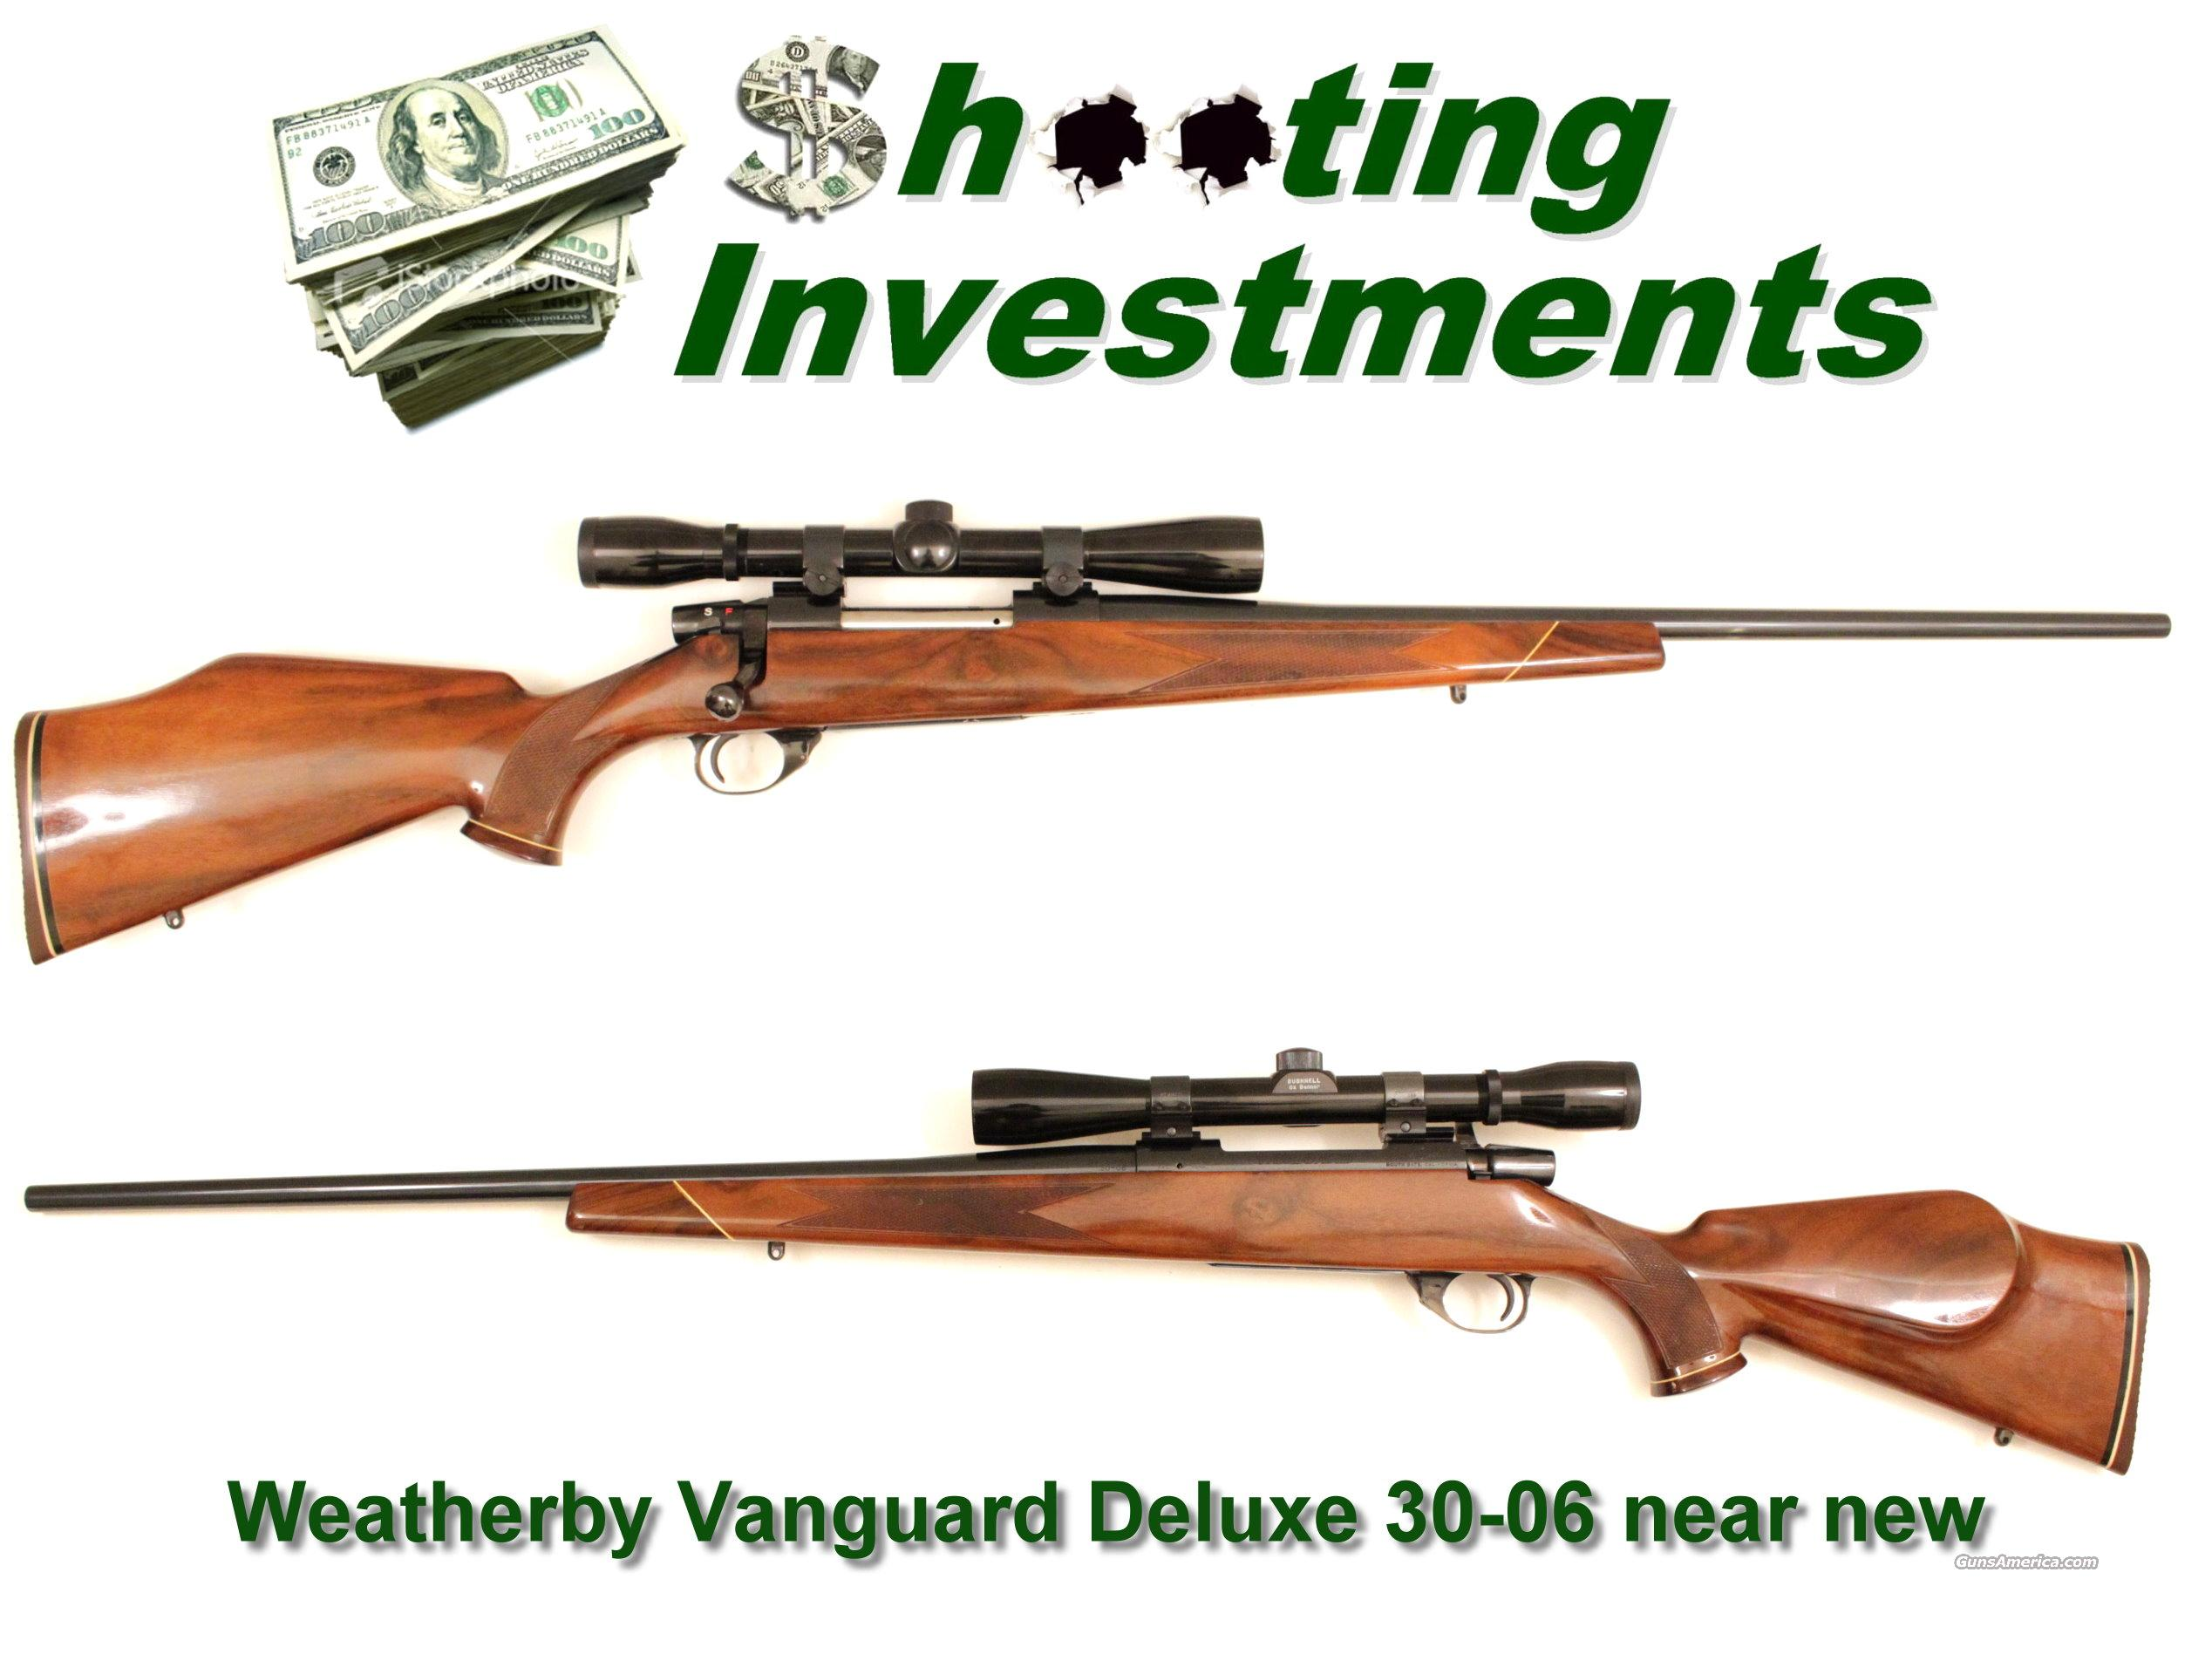 Weatherby Vanguard Deluxe 30-06 Exc Cond with scope  Guns > Rifles > Weatherby Rifles > Sporting